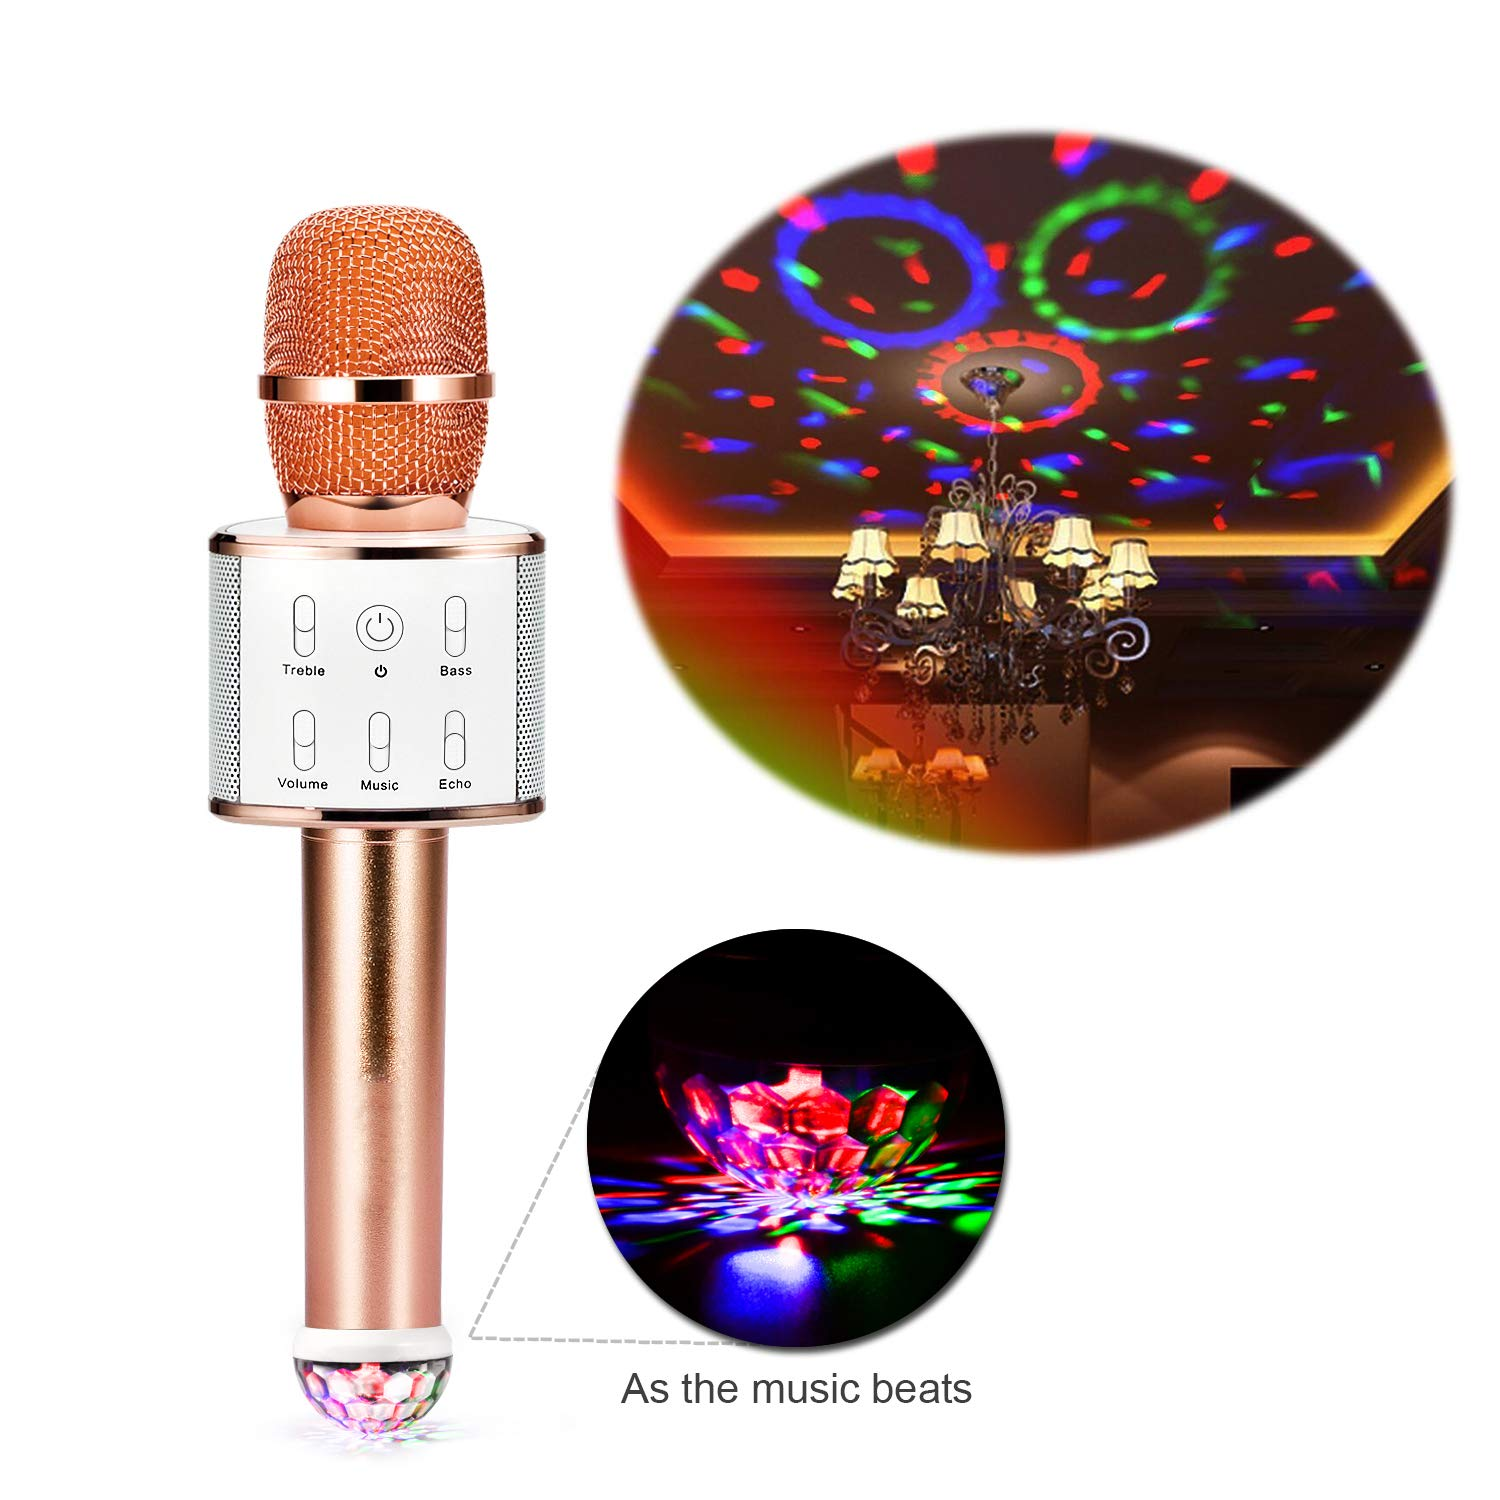 kilokelvin Wireless Microphone Bluetooth, Portable Karaoke mic Speaker with stage lights, Original Sing Mode free to switch (Champagne Gold)